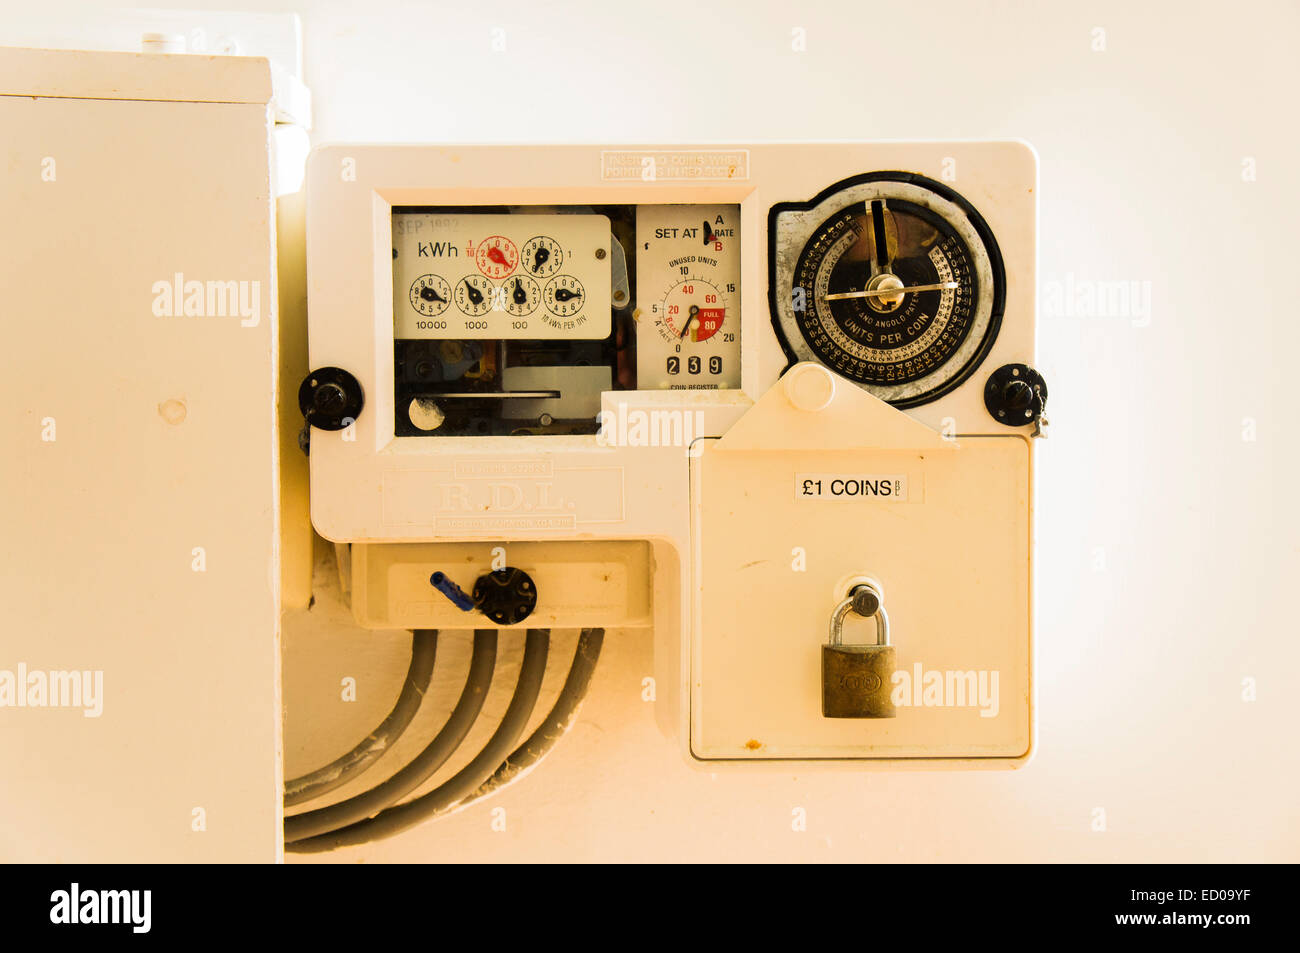 Electricity Coin Meter : Prepayment electricity meter stock photos